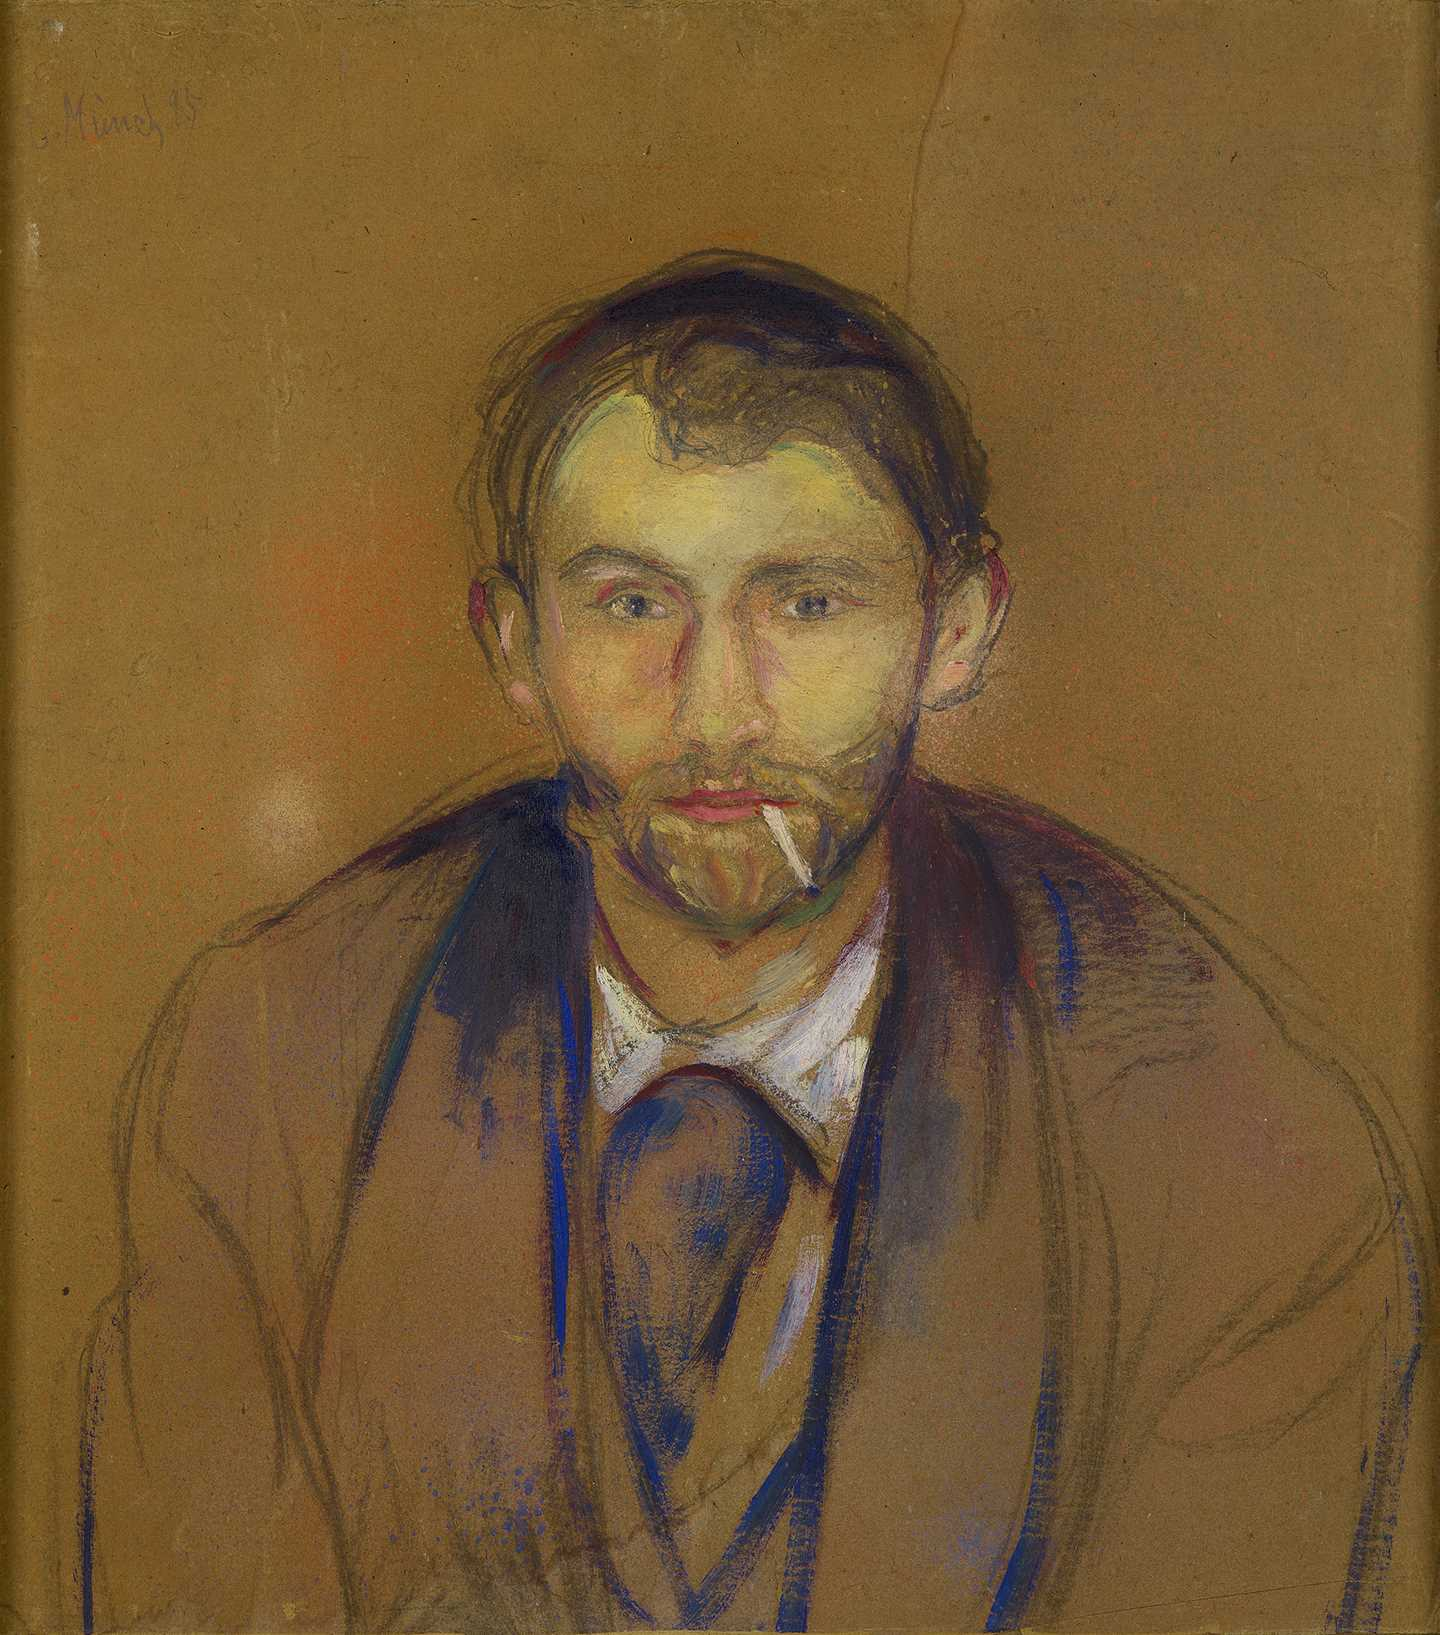 Edvard Munch: Stanislaw Przybyszewski. Oil and/or tempera unprimed cardboard, 1895. Photo © Munchmuseet